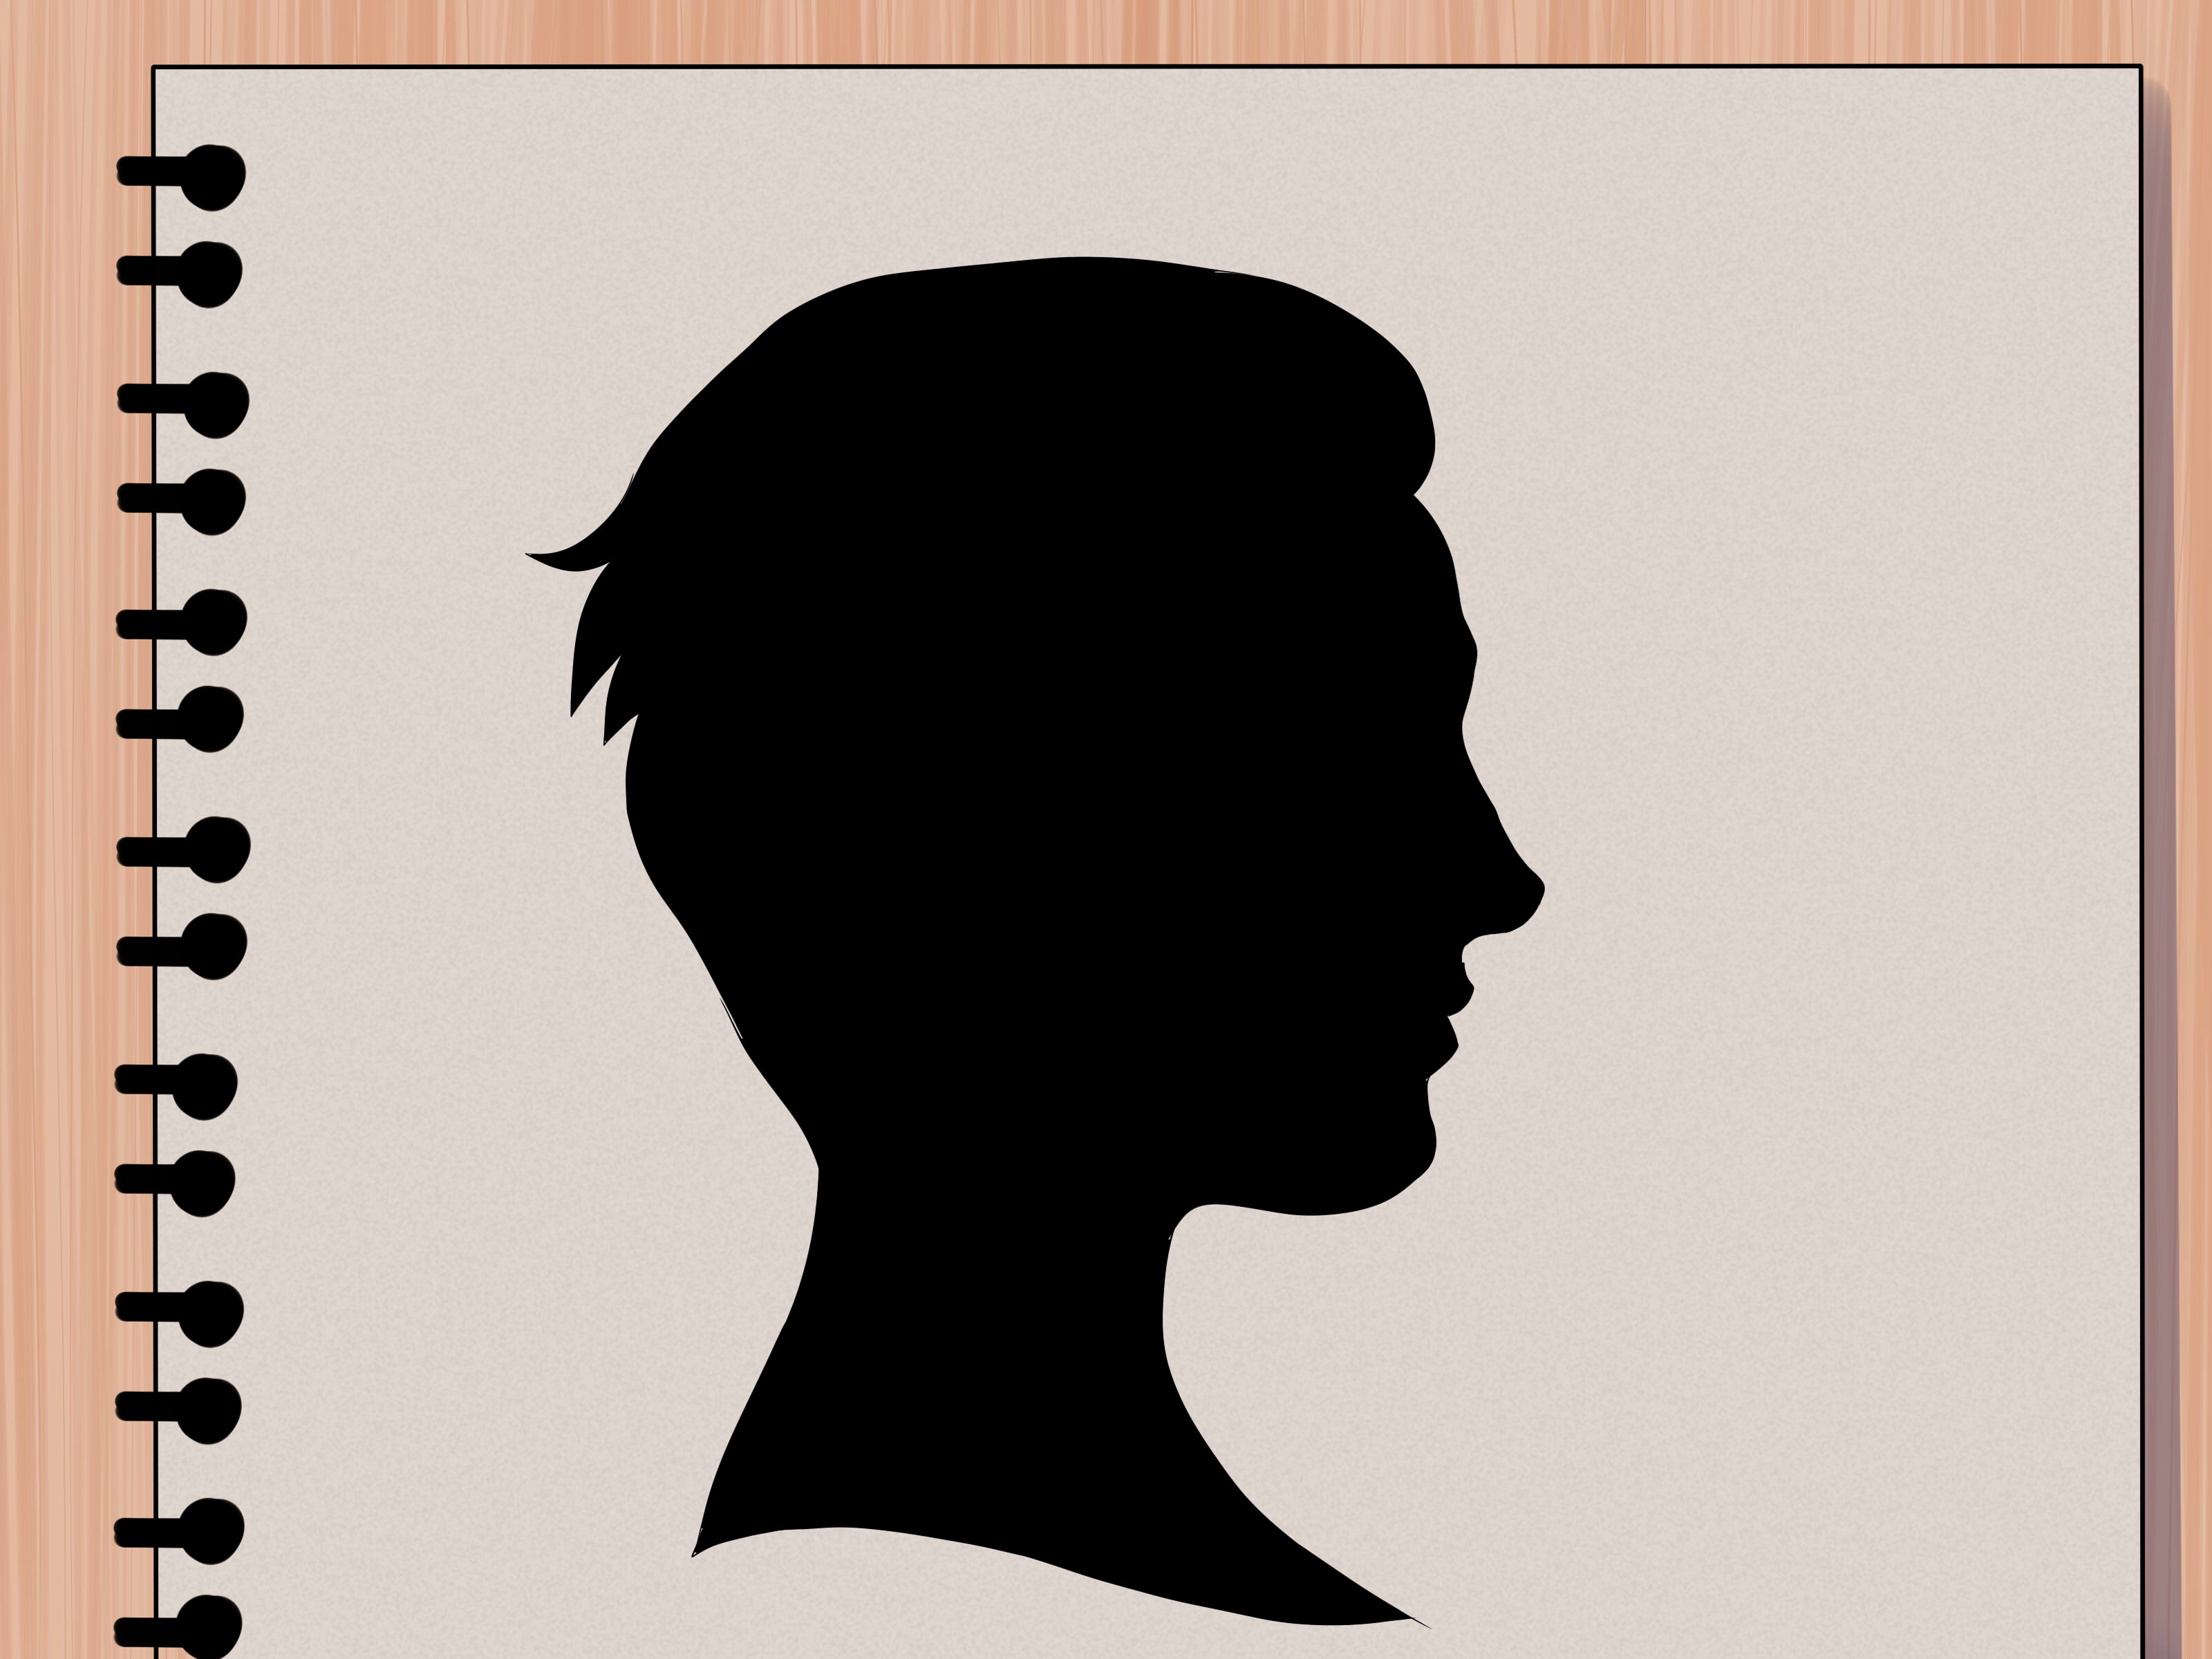 Drawn profile half face Silhouette: wikiHow a Steps